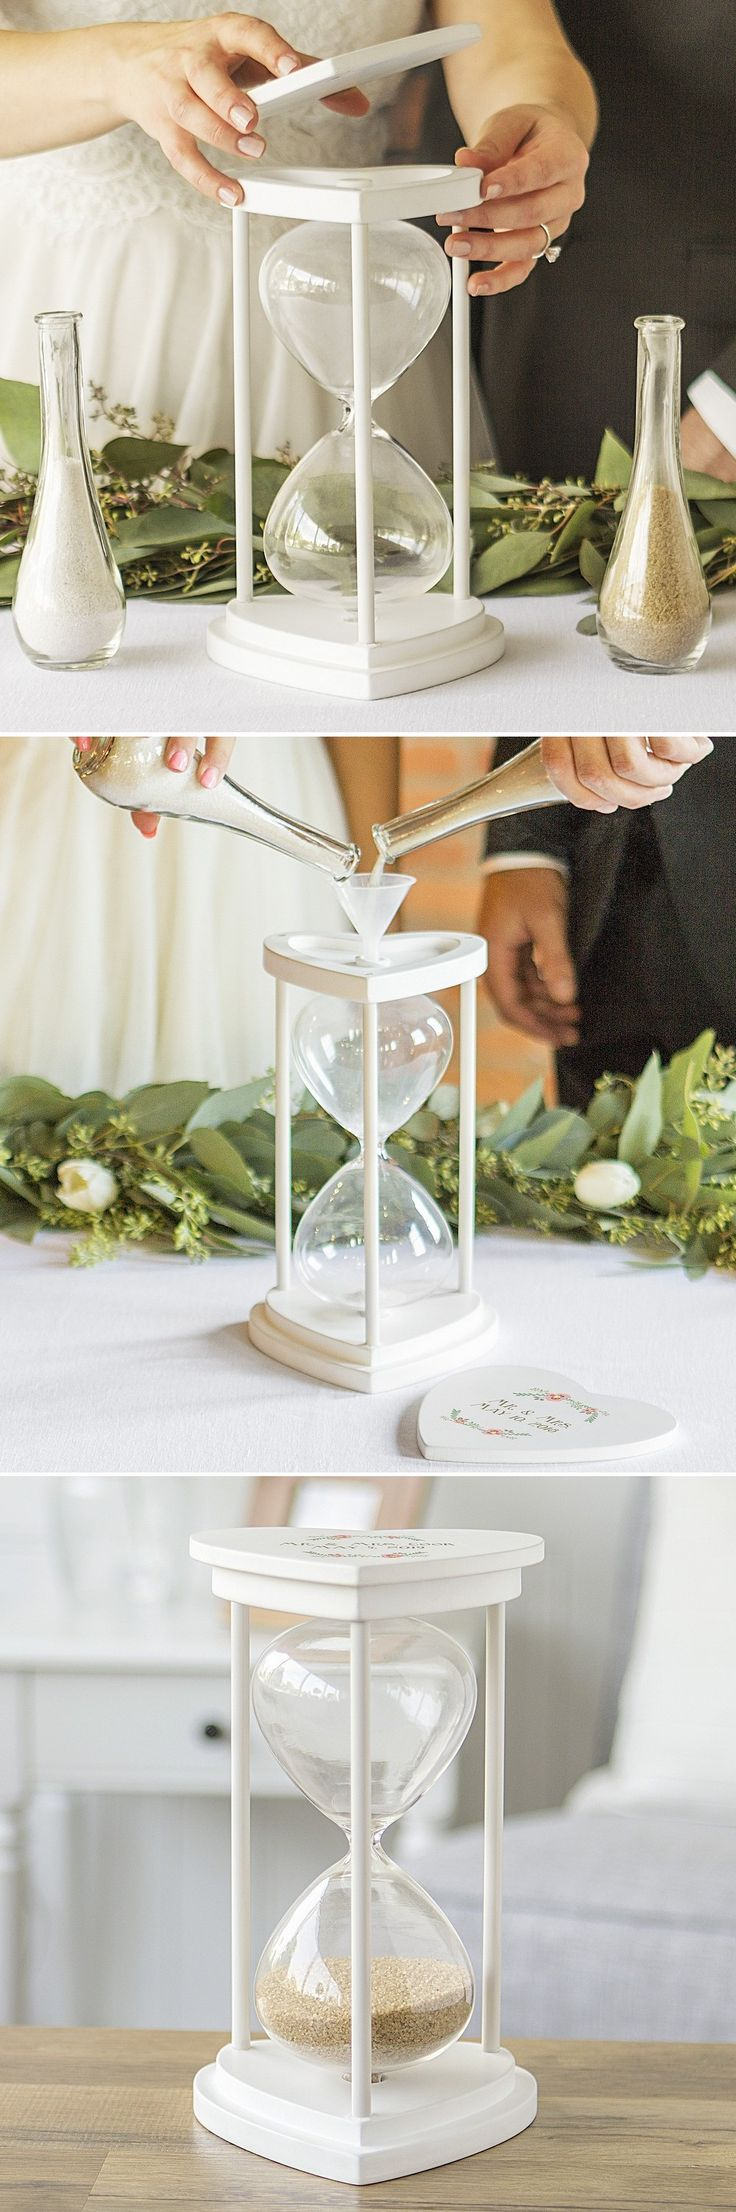 Perfect idea for unity/sand ceremony. Hourglasses are one of our favorite things and having one that means so much, custom, hand poured in love would be amazing.